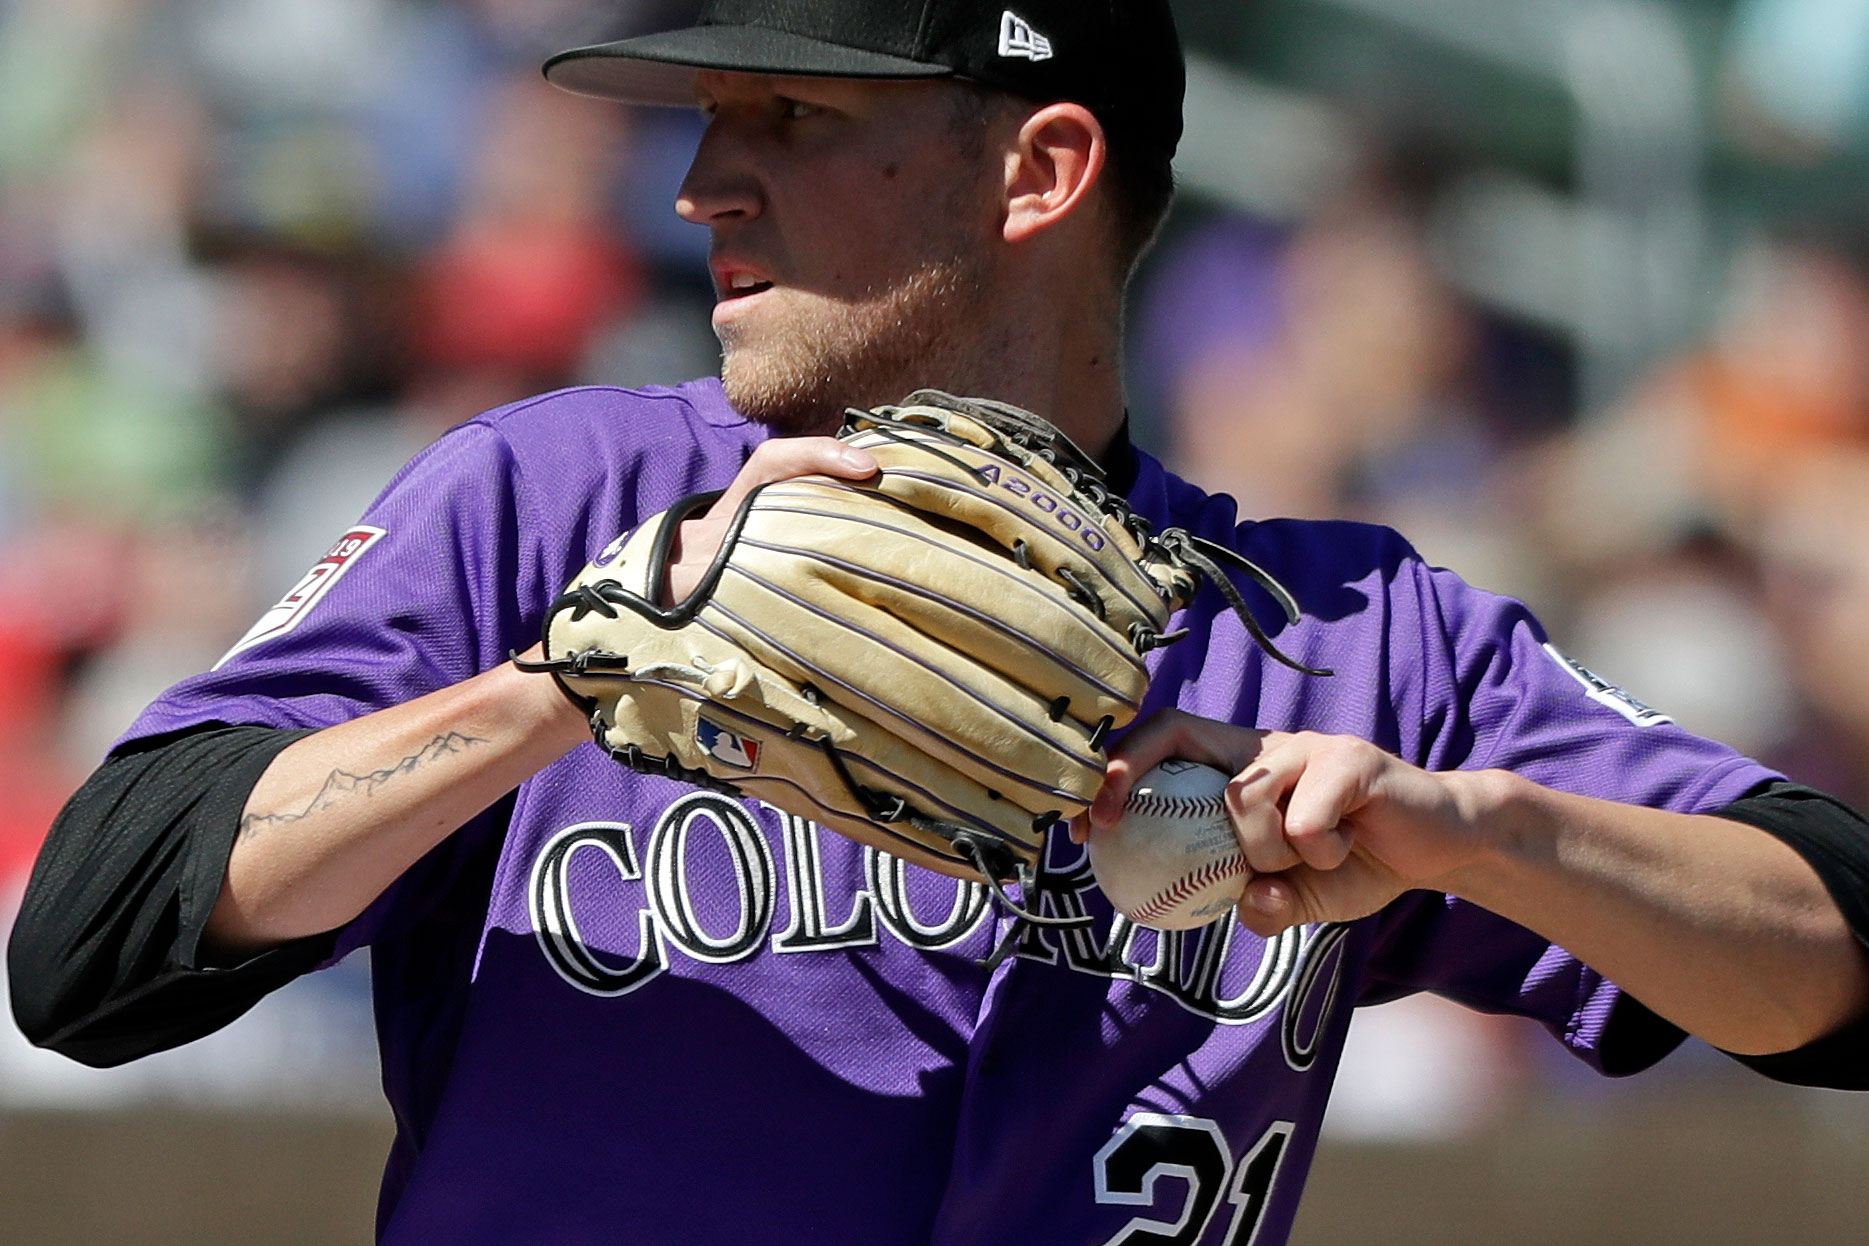 <p>A tattoo of mountains extends down the right arm of left-handed Colorado Rockies starting pitcher Kyle Freeland as he throws against the Cincinnati Reds in a spring training baseball game Monday, March 18, 2019, in Scottsdale, Ariz.</p>